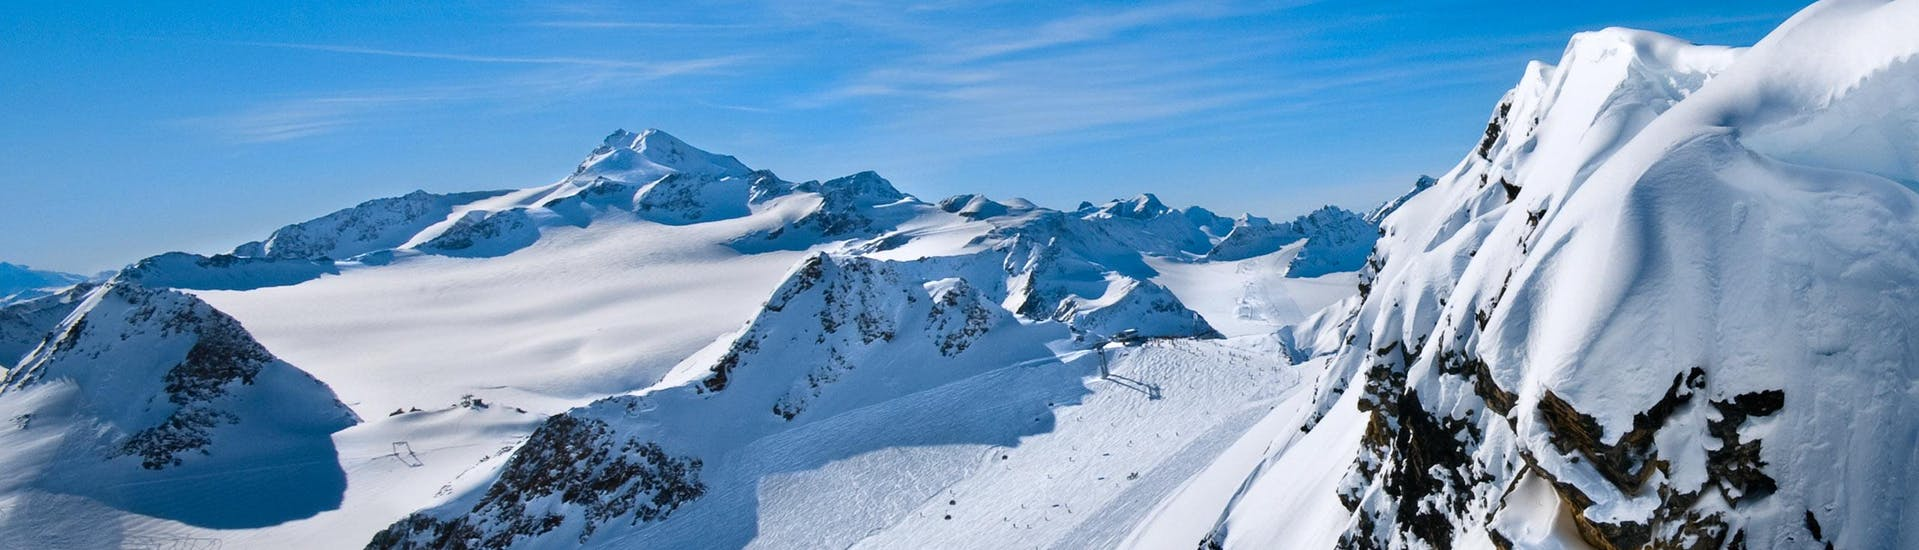 A view of a snowy mountain top in the ski resort of Szczyrk, where ski schools gather to start their ski lessons.